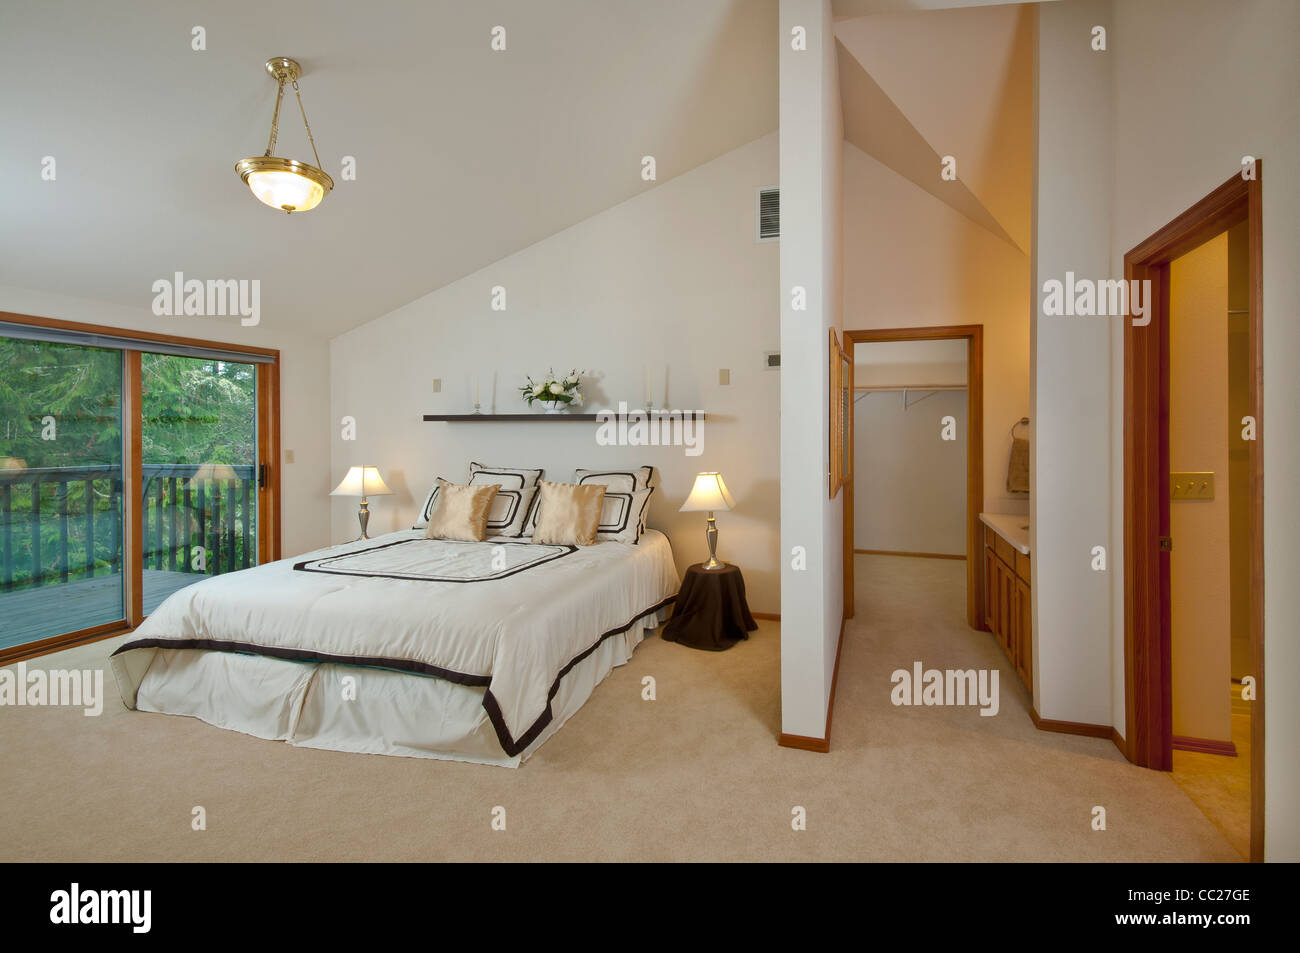 Master Bedroom In Luxury House Showing Walk In Closet And Part Of